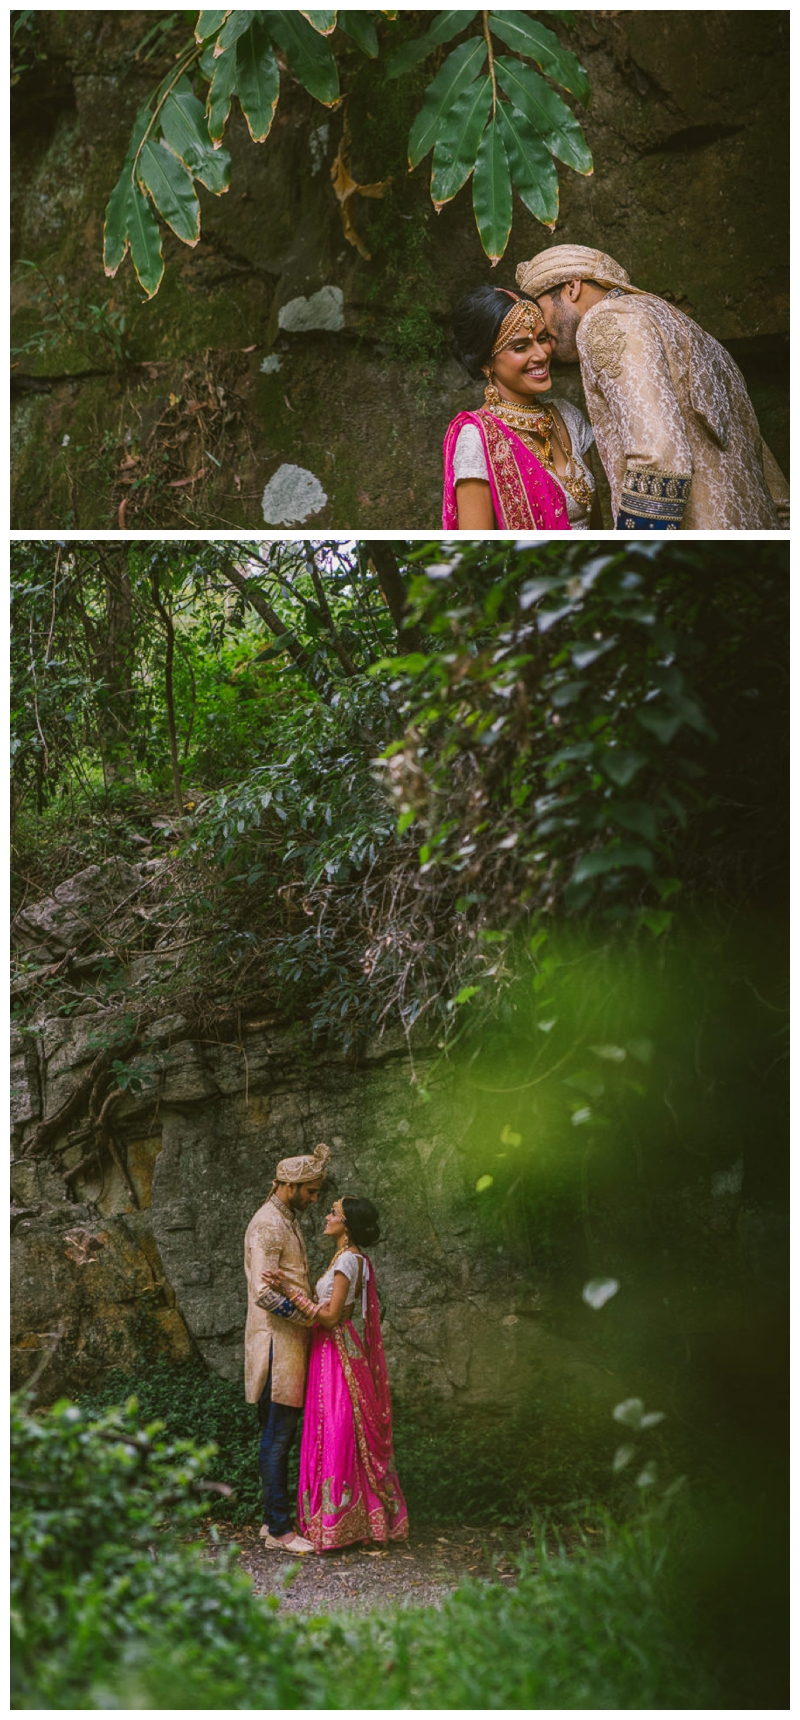 nature, bush, rainforest, trees, wedding photographer, hindu, just married, love, bride and groom